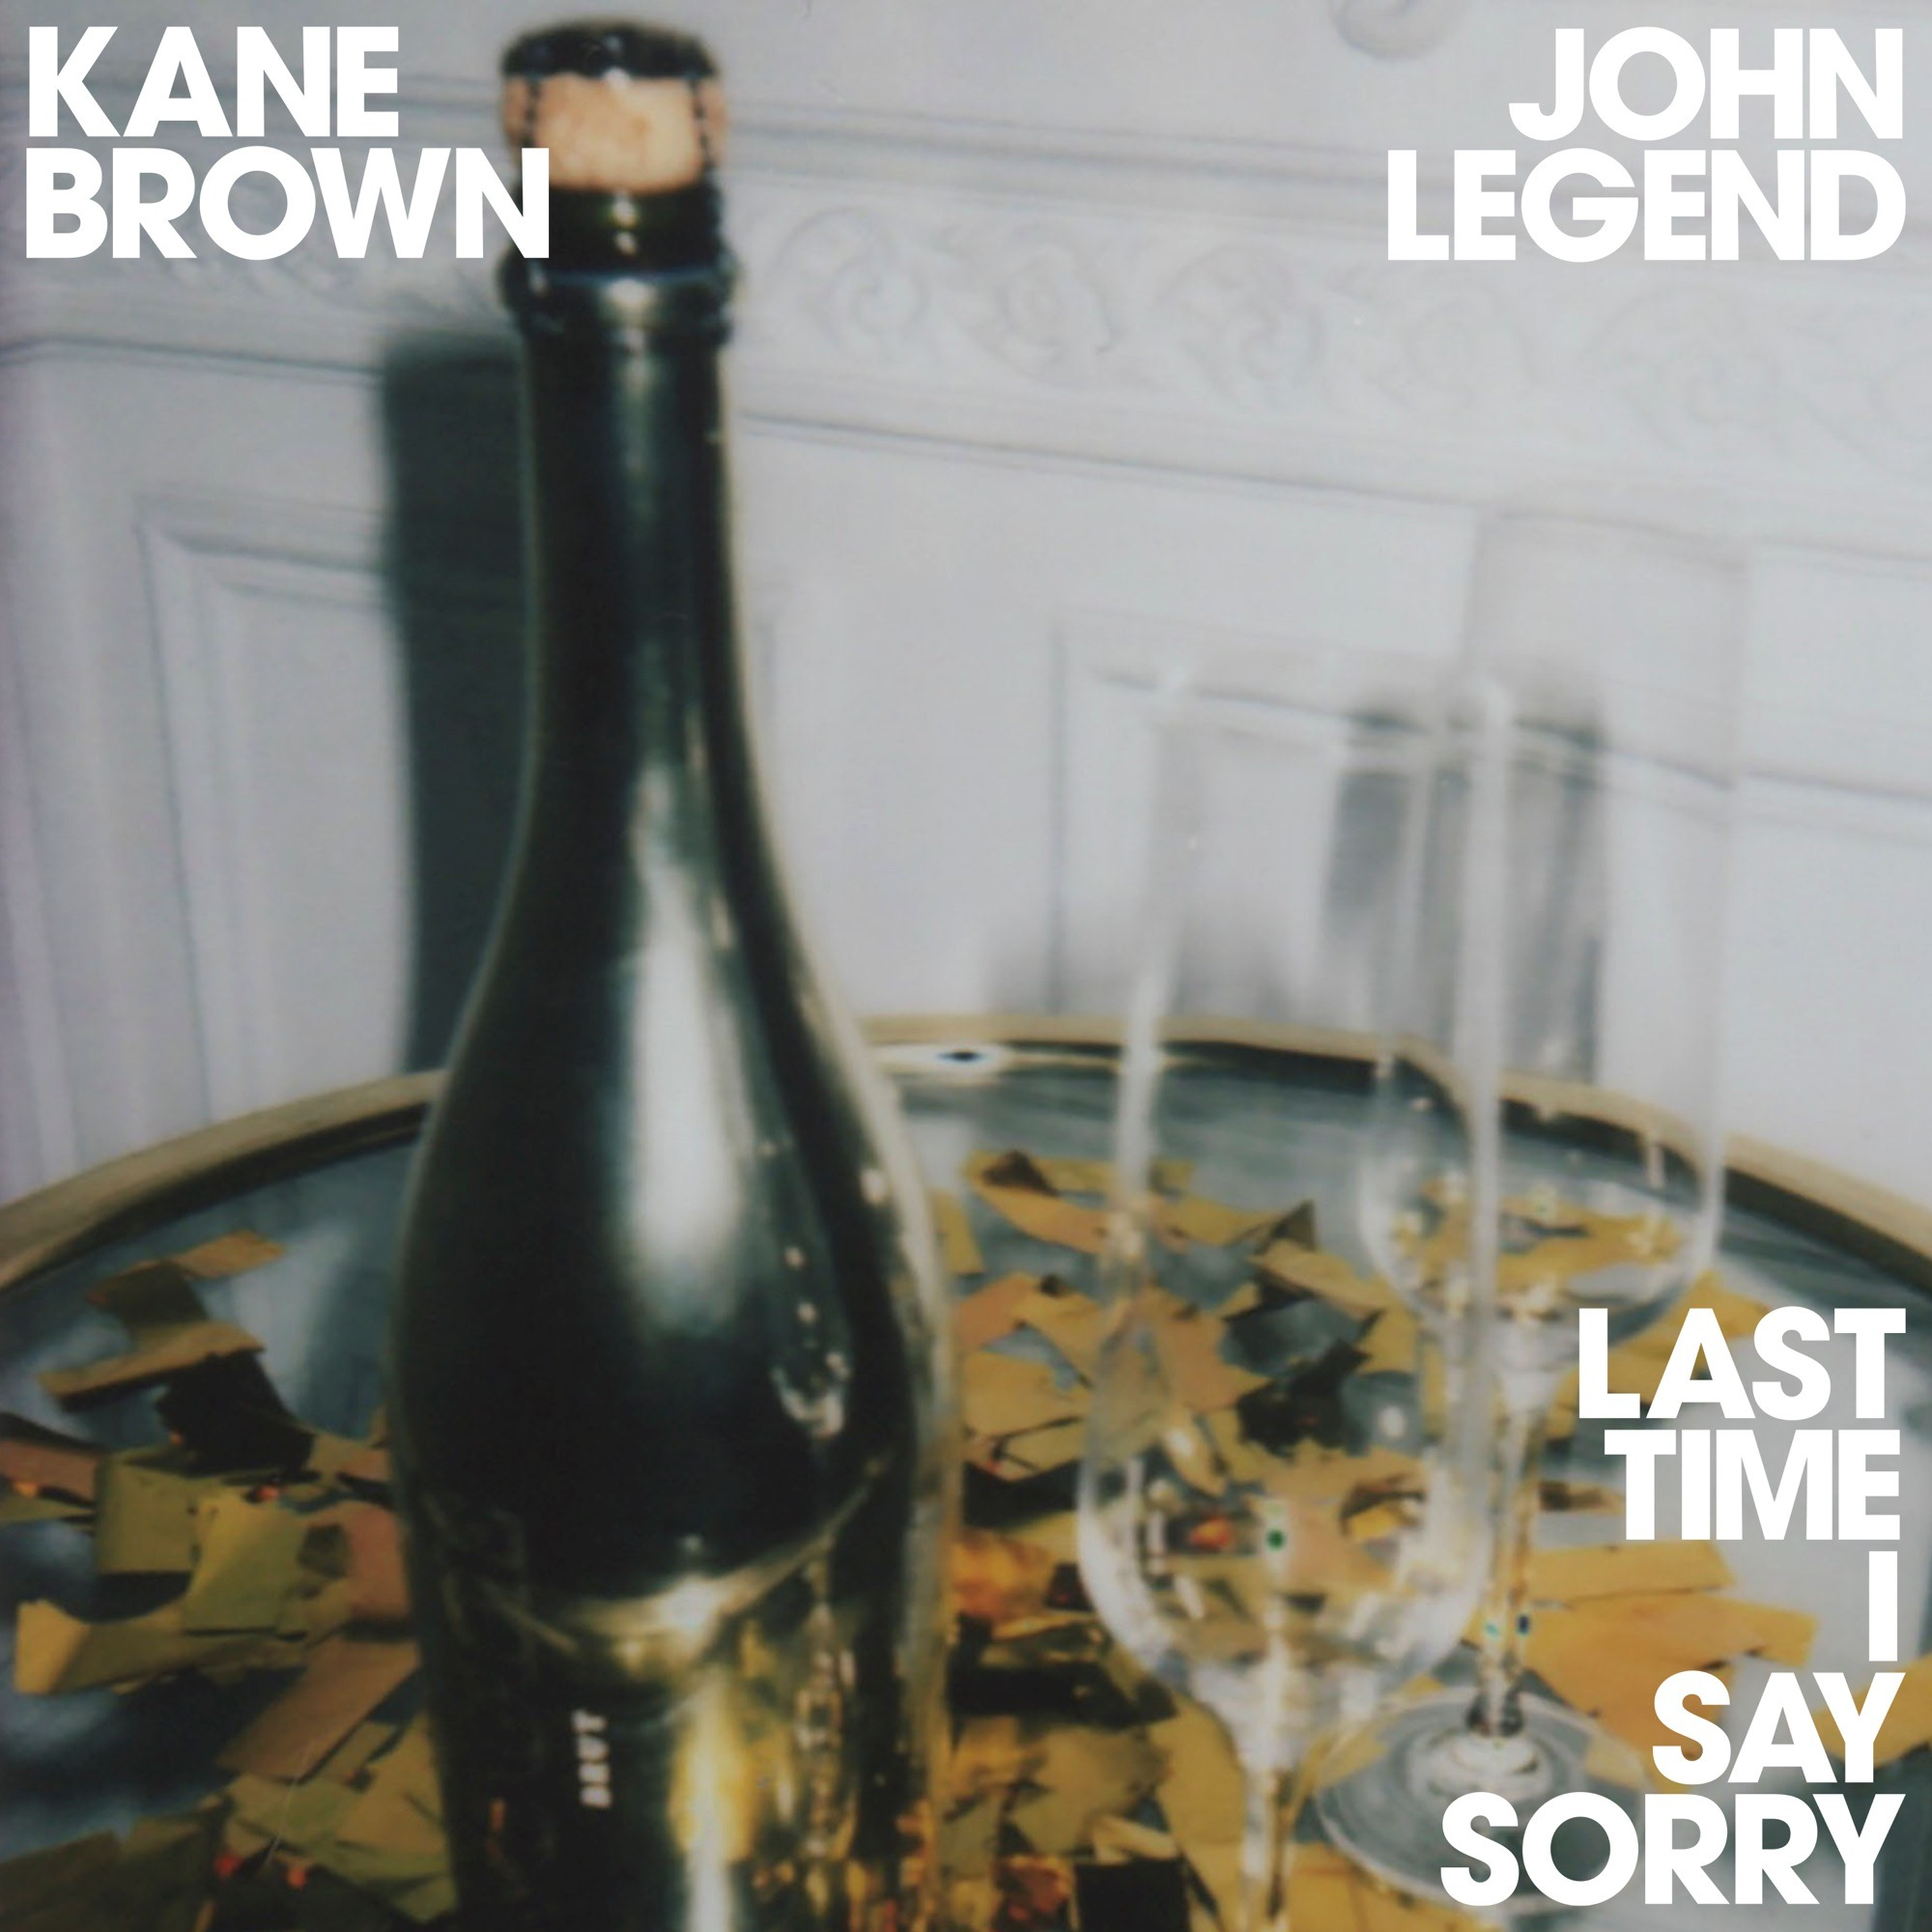 Kane Brown & John Legend – Last Time I Say Sorry